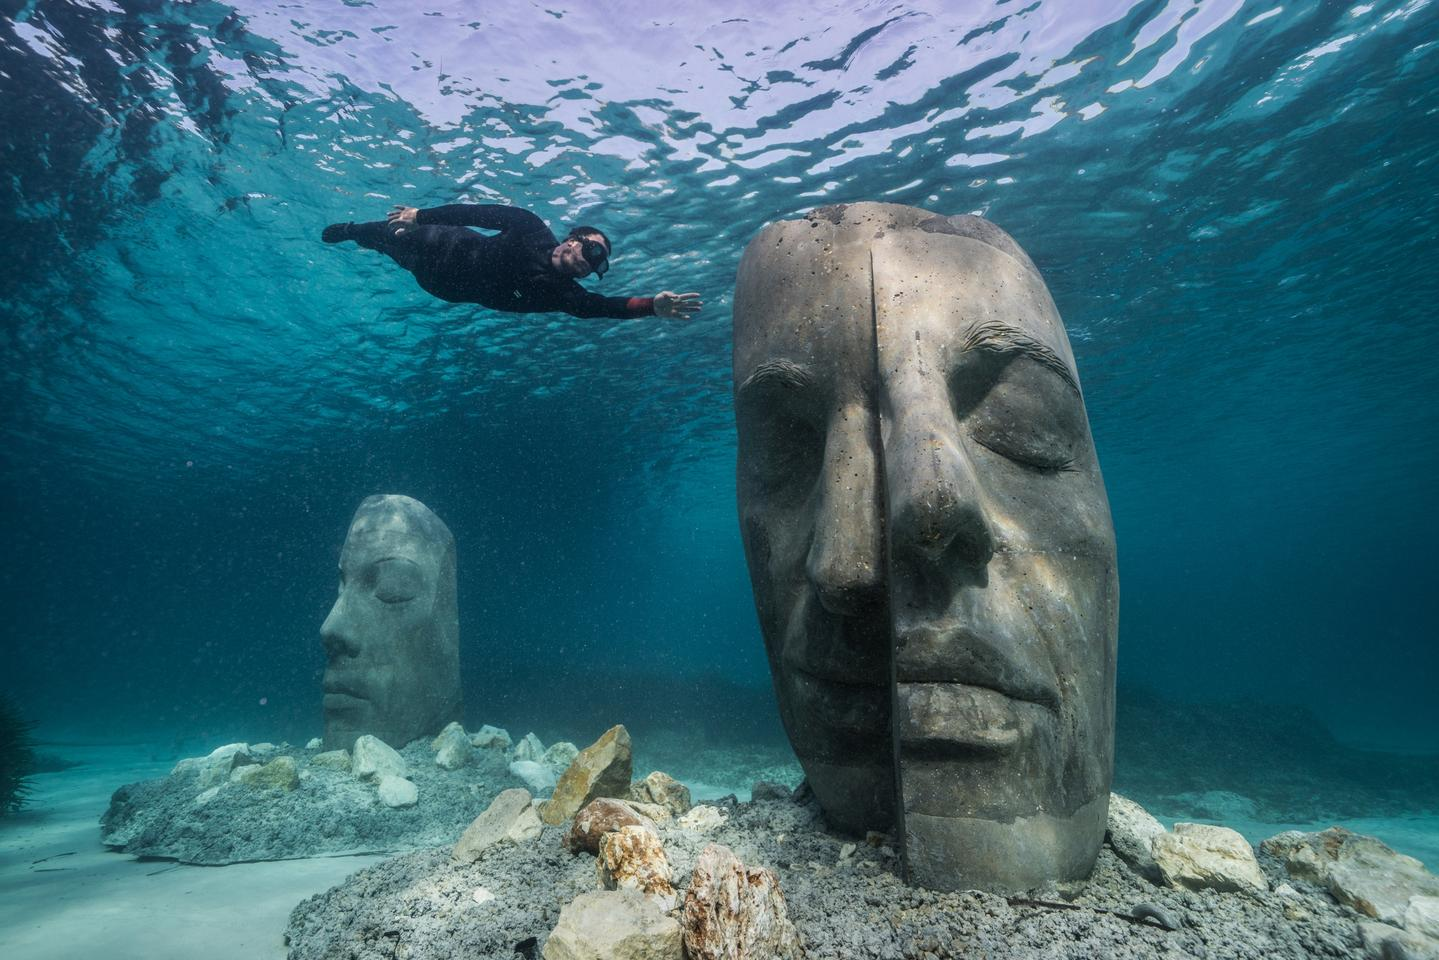 The Underwater Museum of Cannes consists of six head-like sculptures, each of which weighs 10 tons